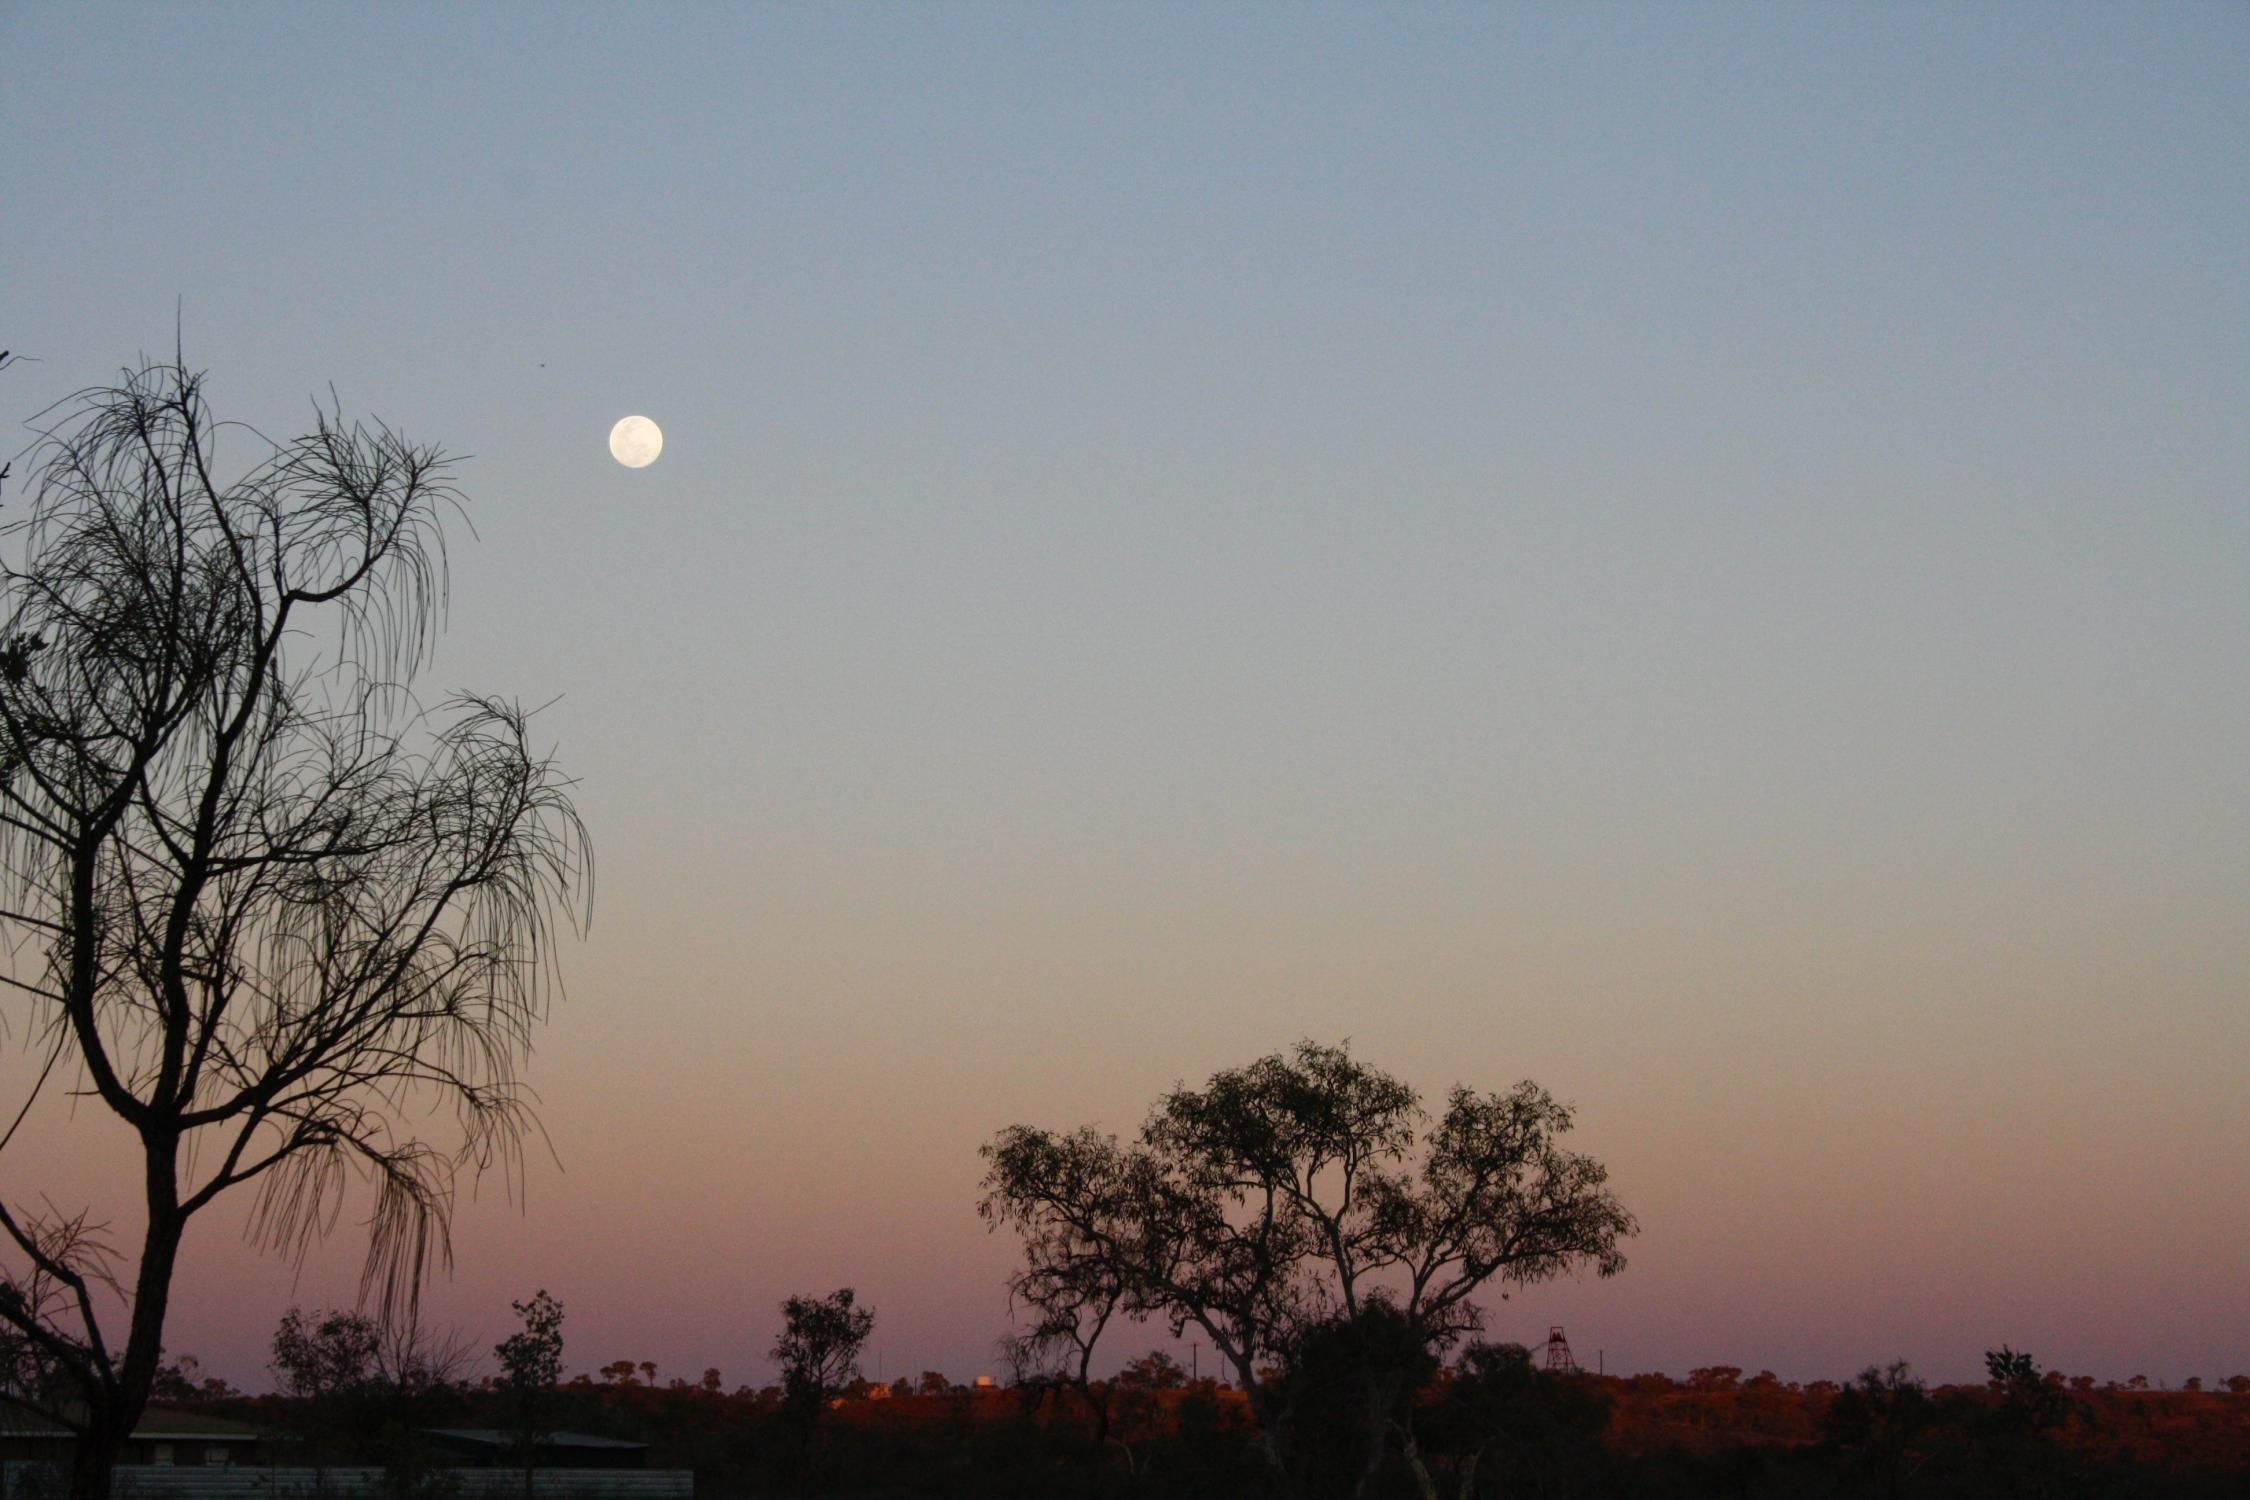 Landscape image of Tennant Creek, Northern Territory